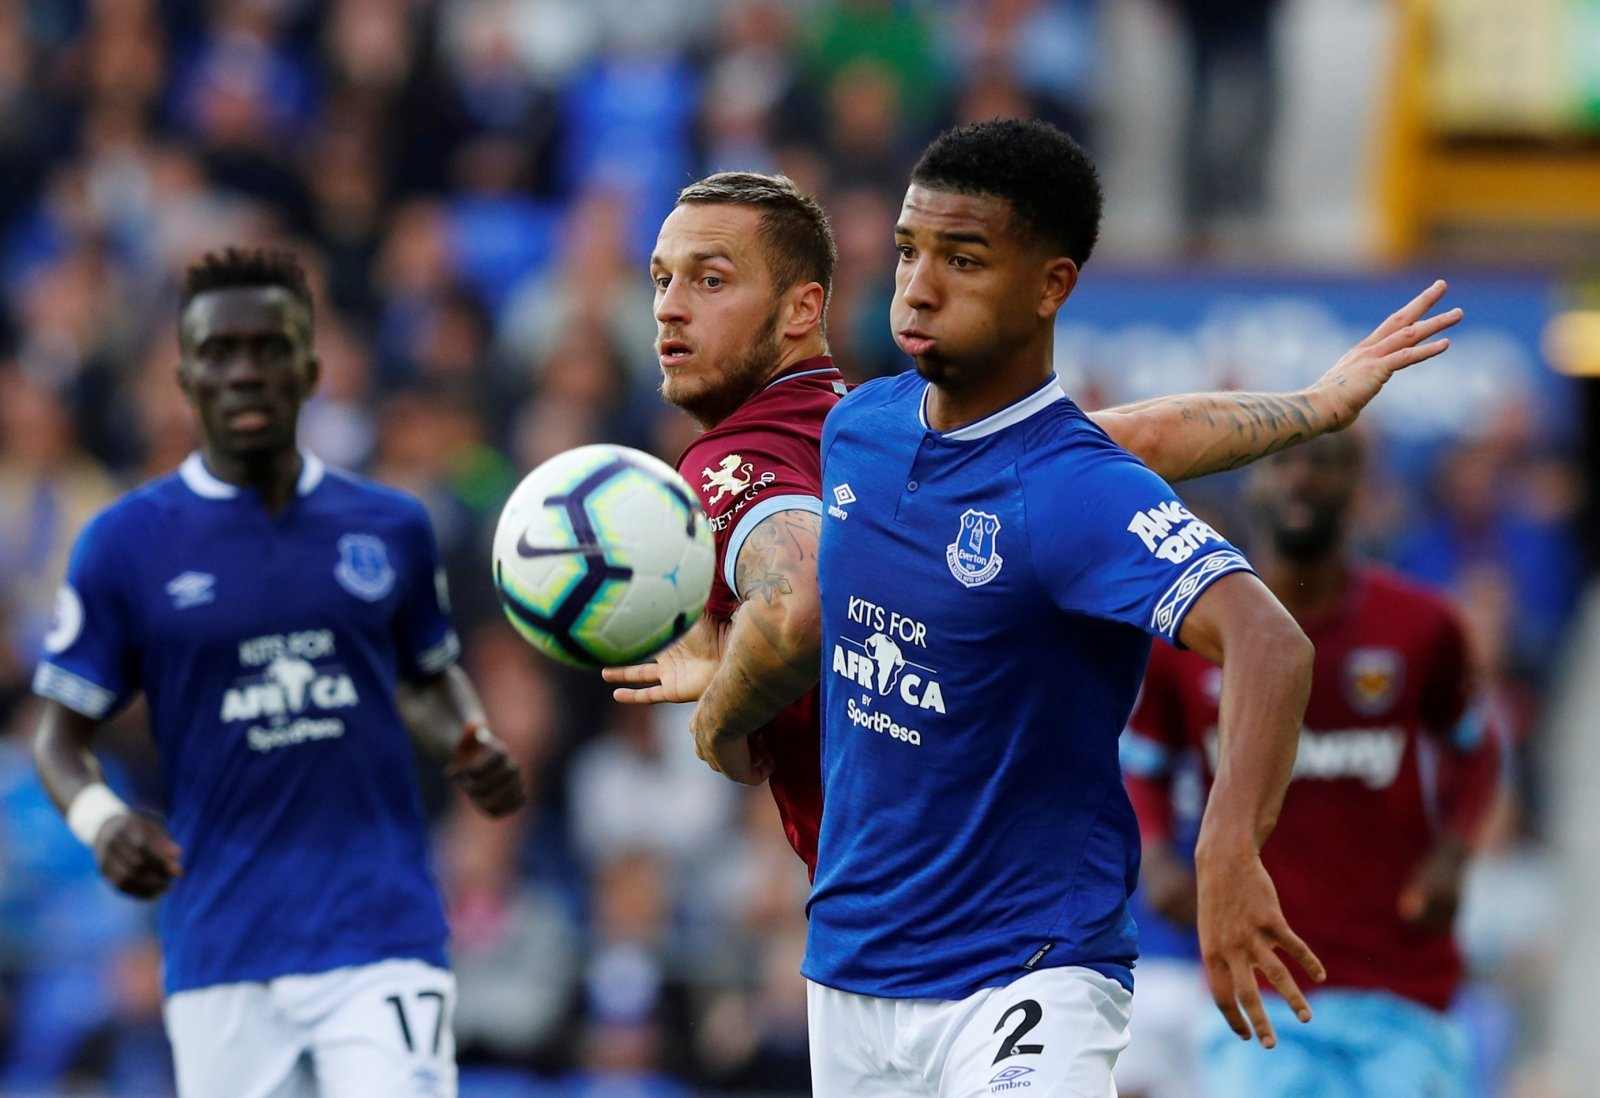 A loan move is exactly what Holgate needs after falling down Everton pecking order